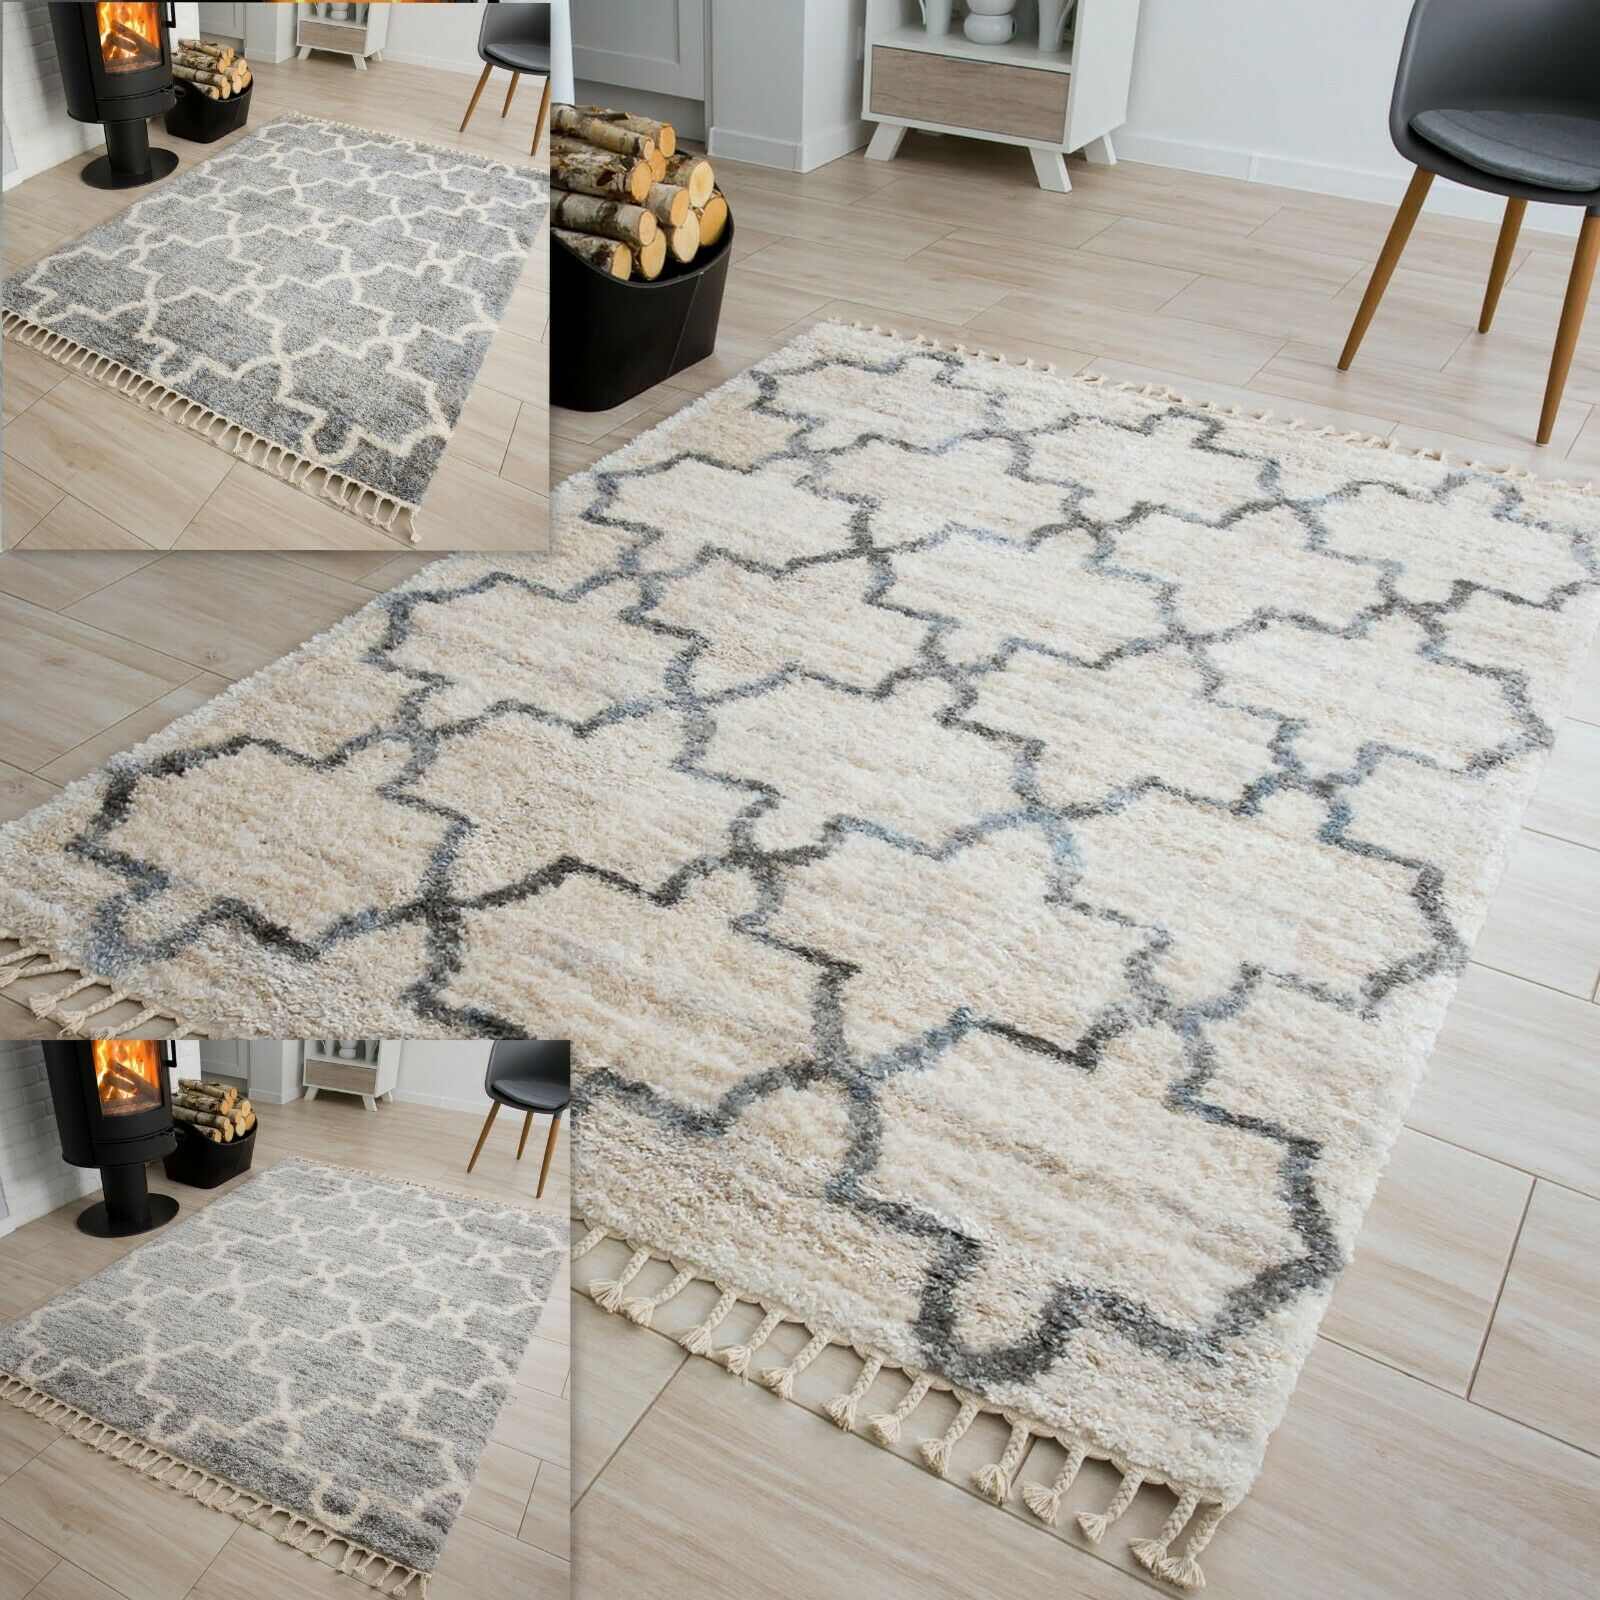 Modern Cream Grey Plush Rugs Moroccan Trellis Fringes Soft Shaggy Bedroom Rug Ebay